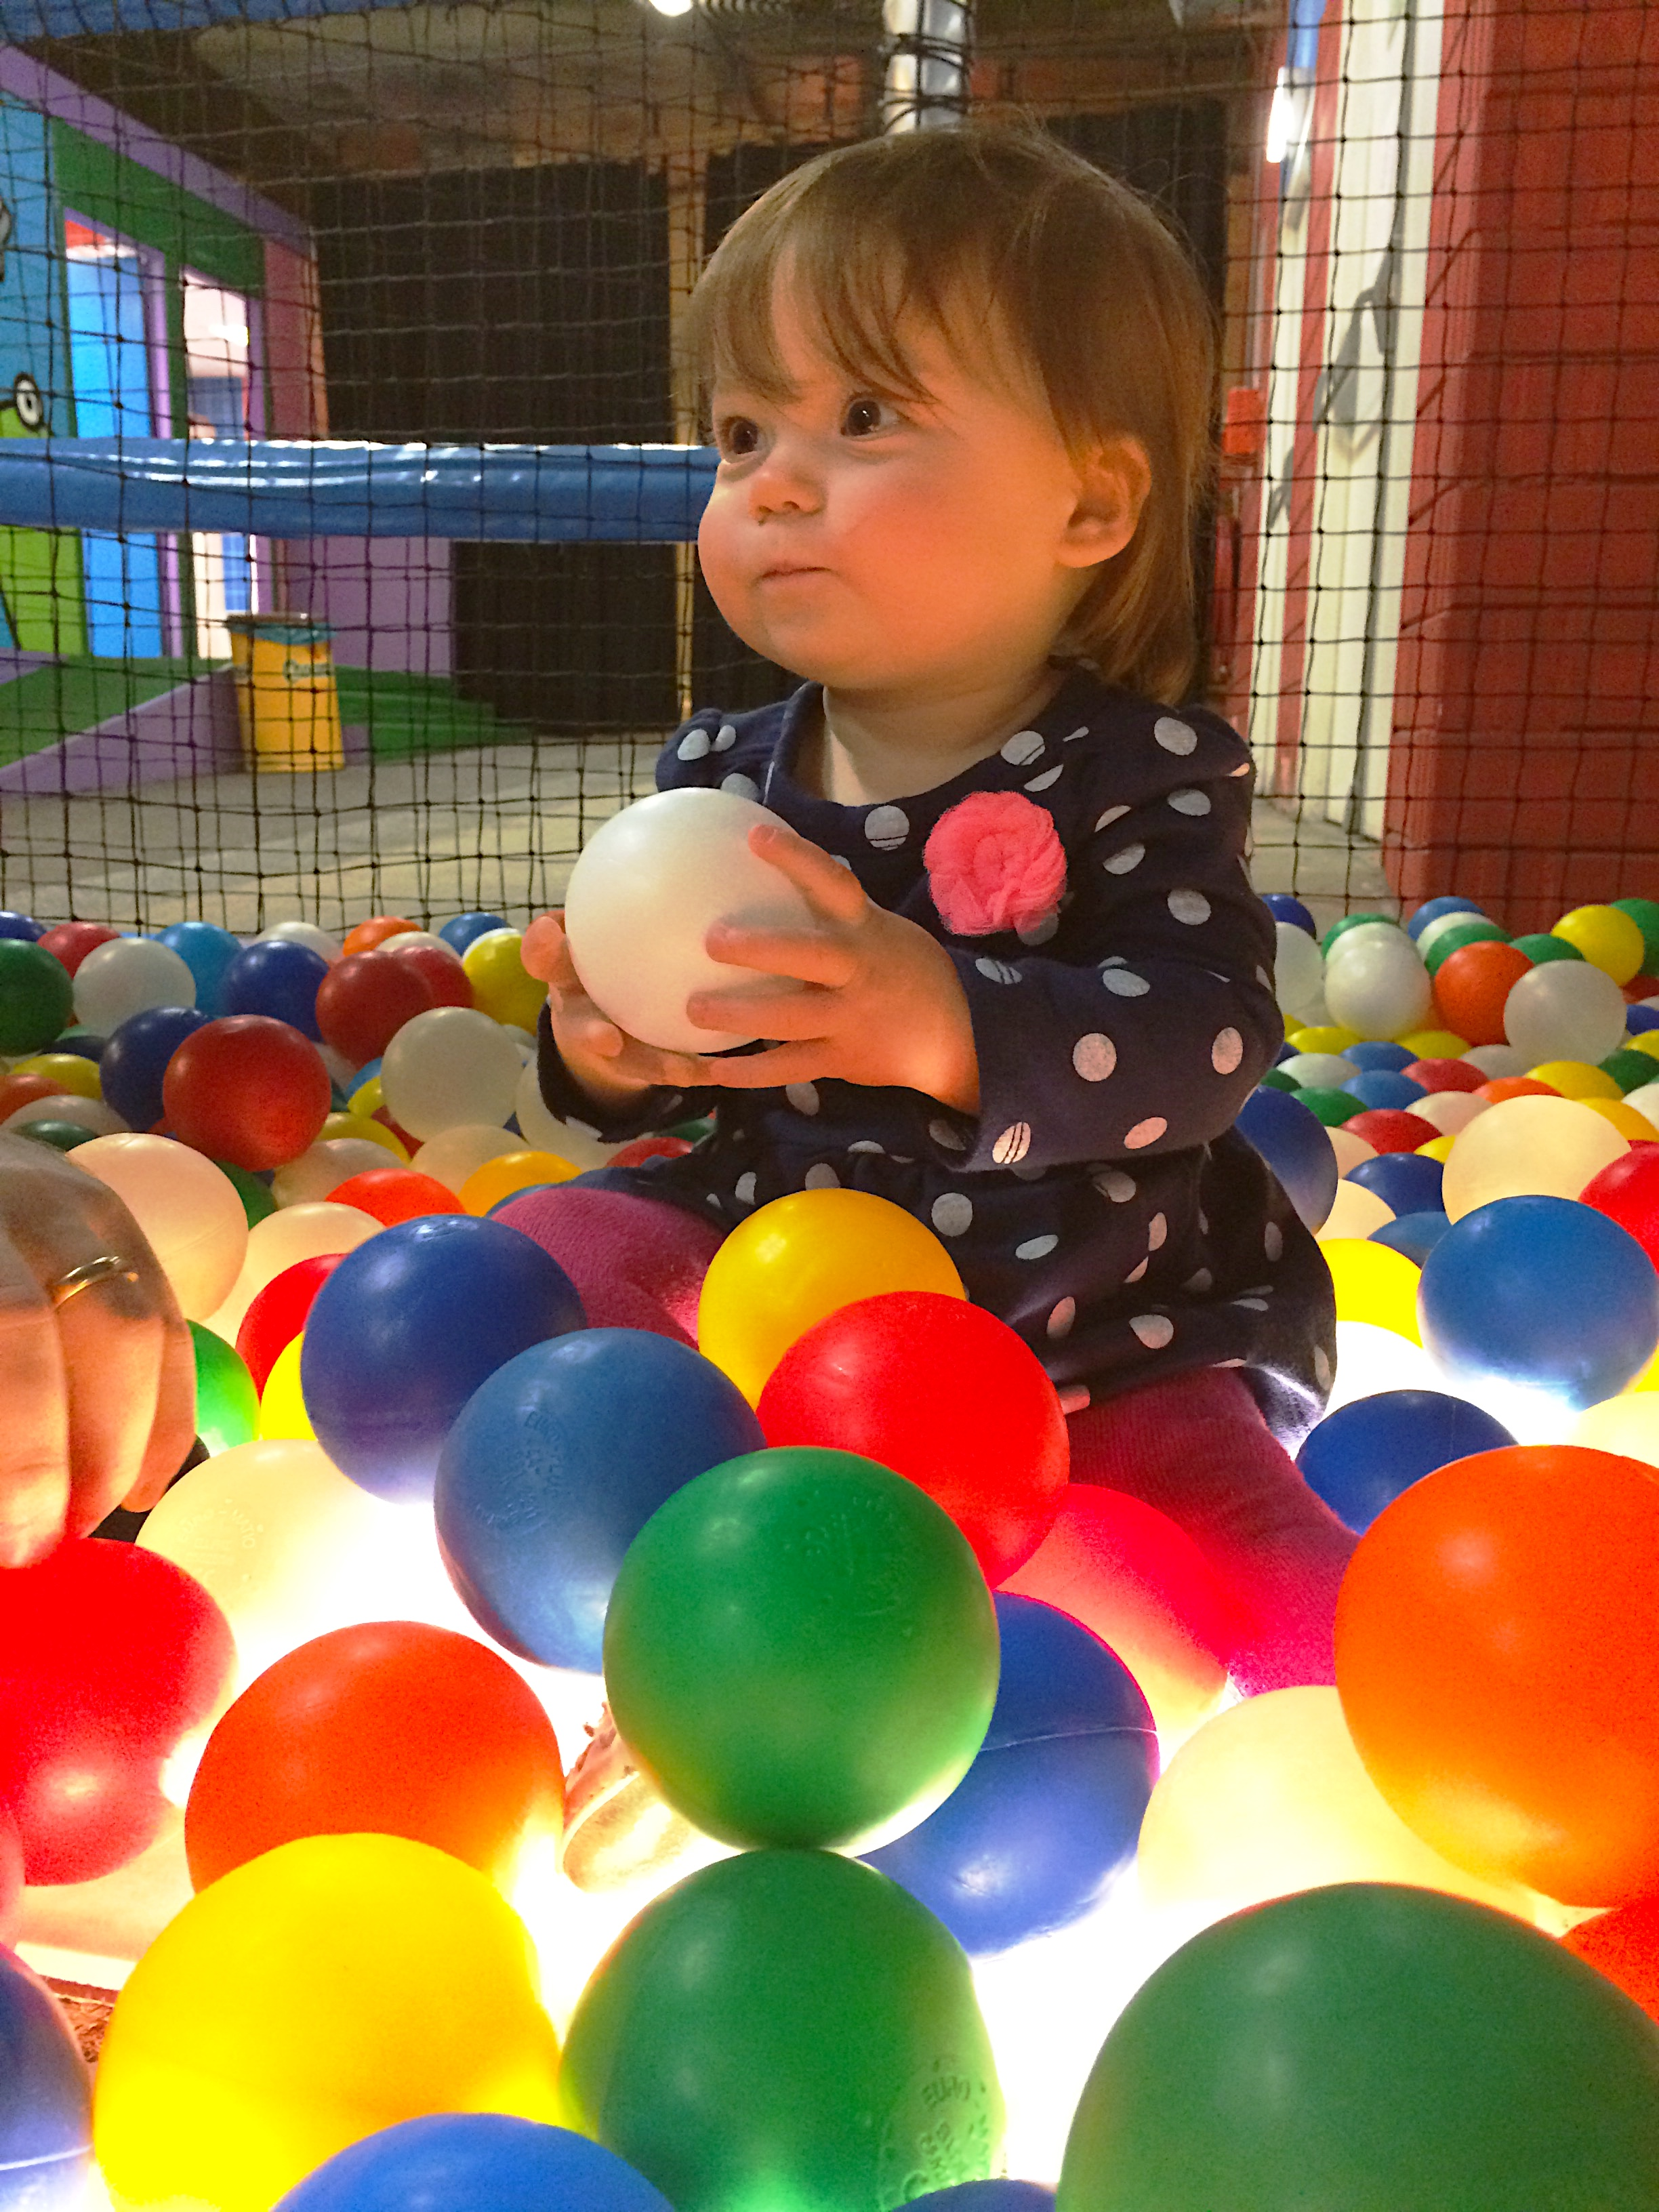 Ava in the ball pit